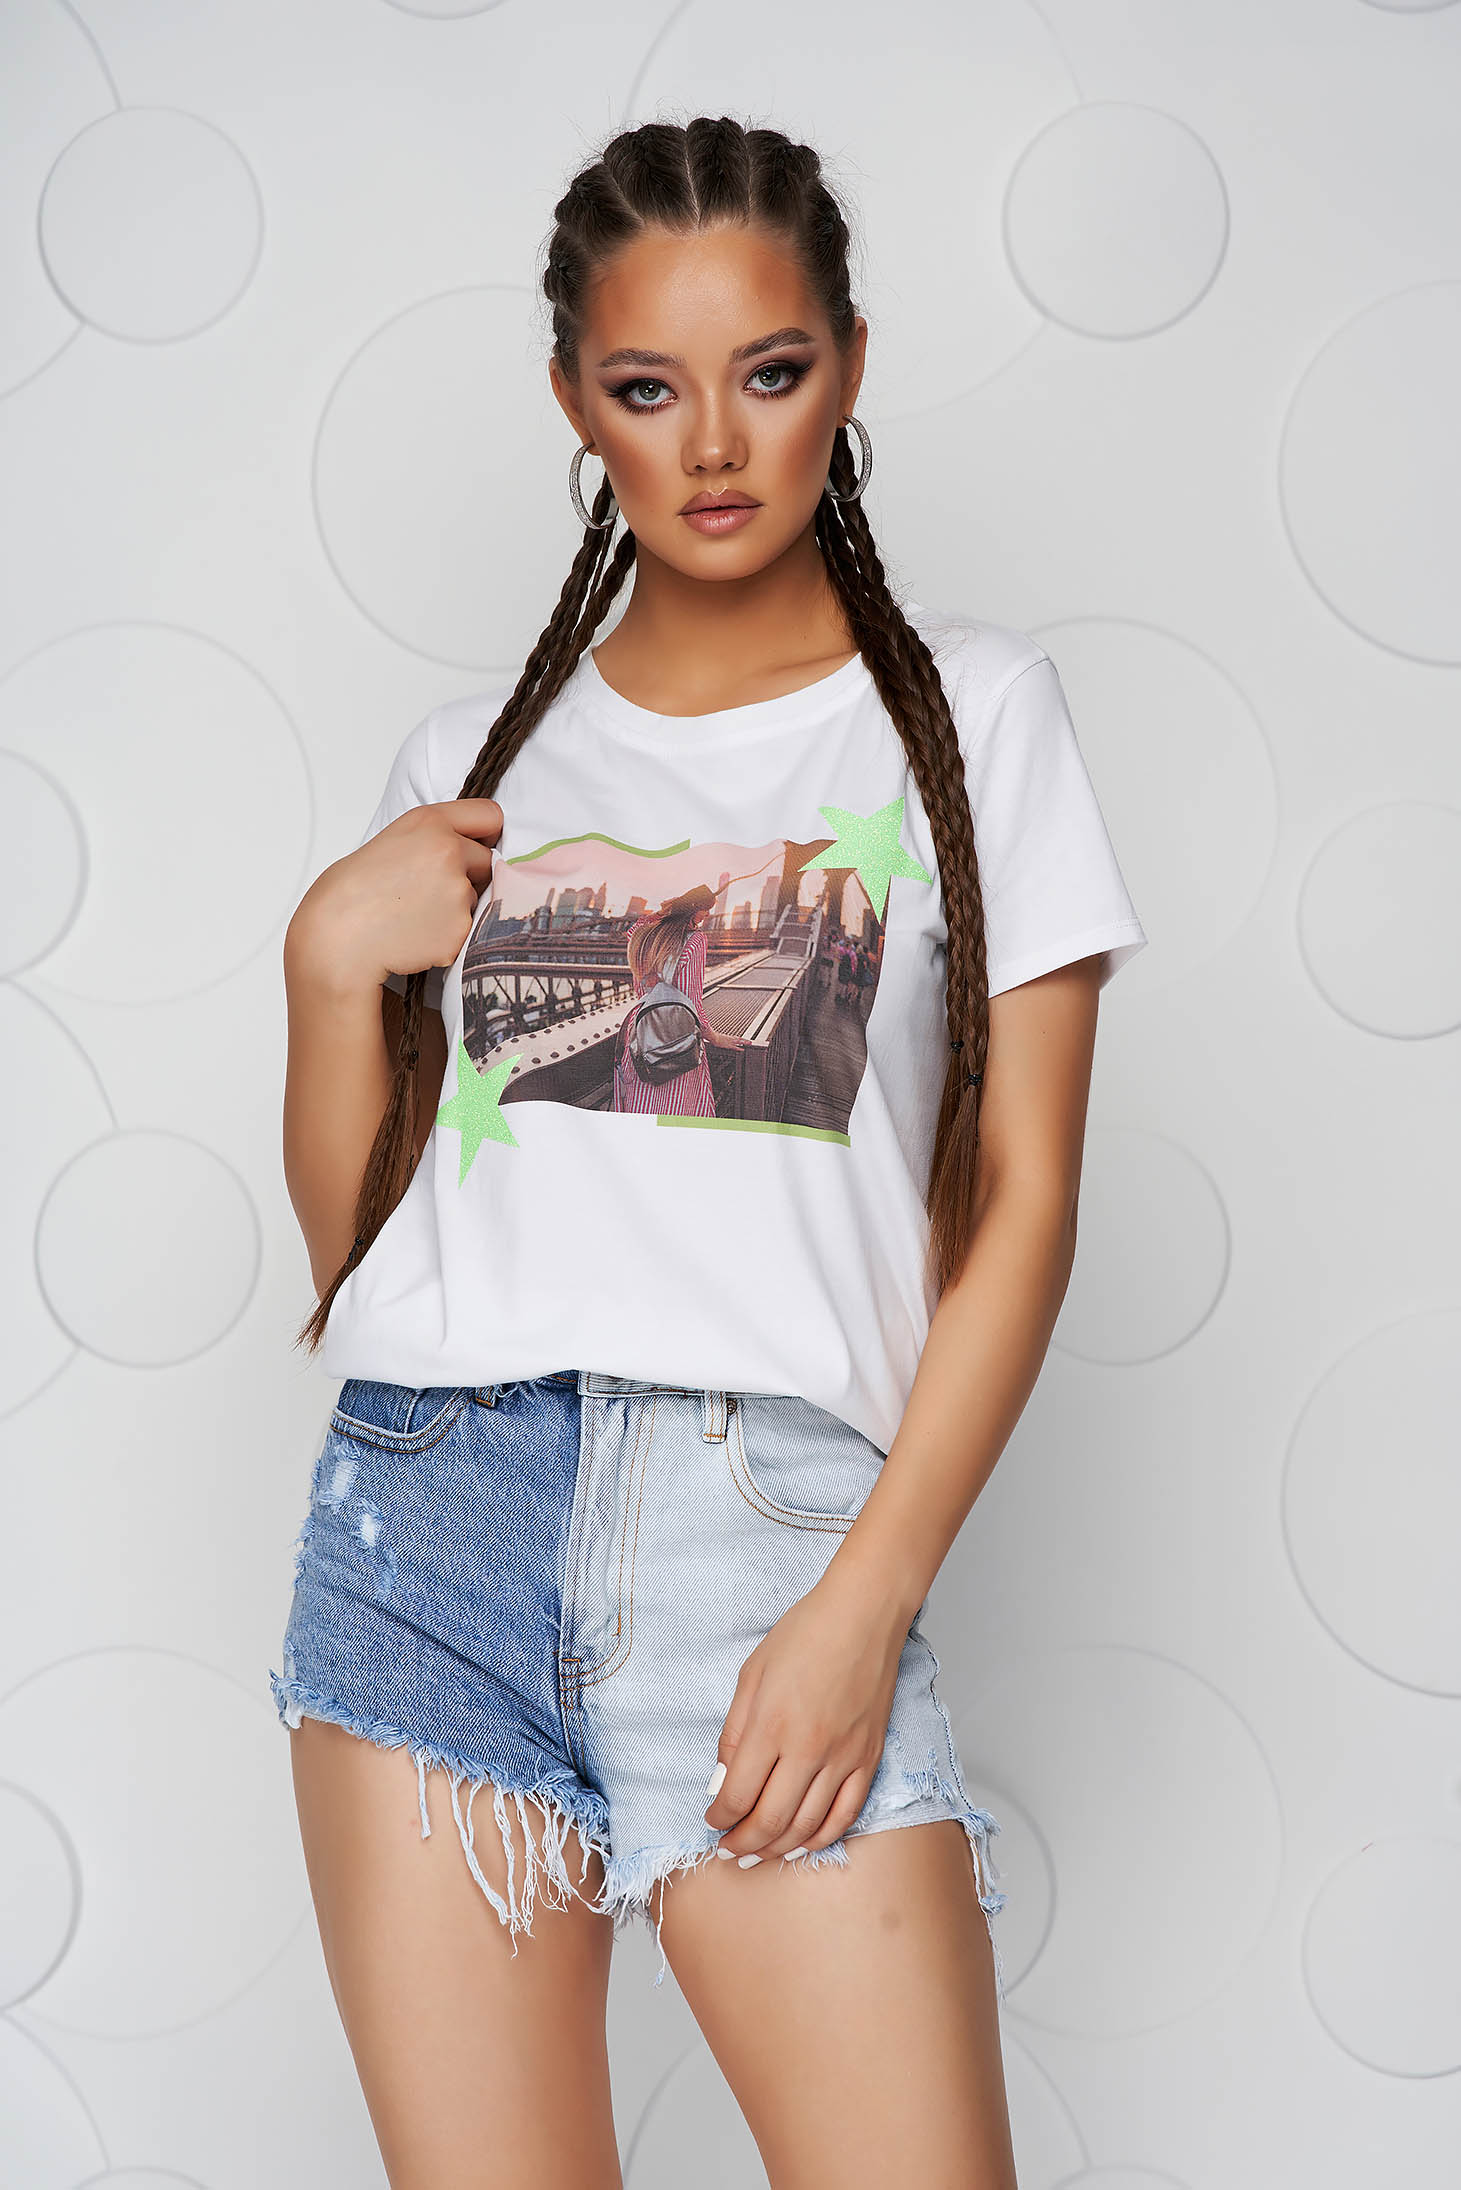 Green t-shirt cotton loose fit with rounded cleavage with glitter details